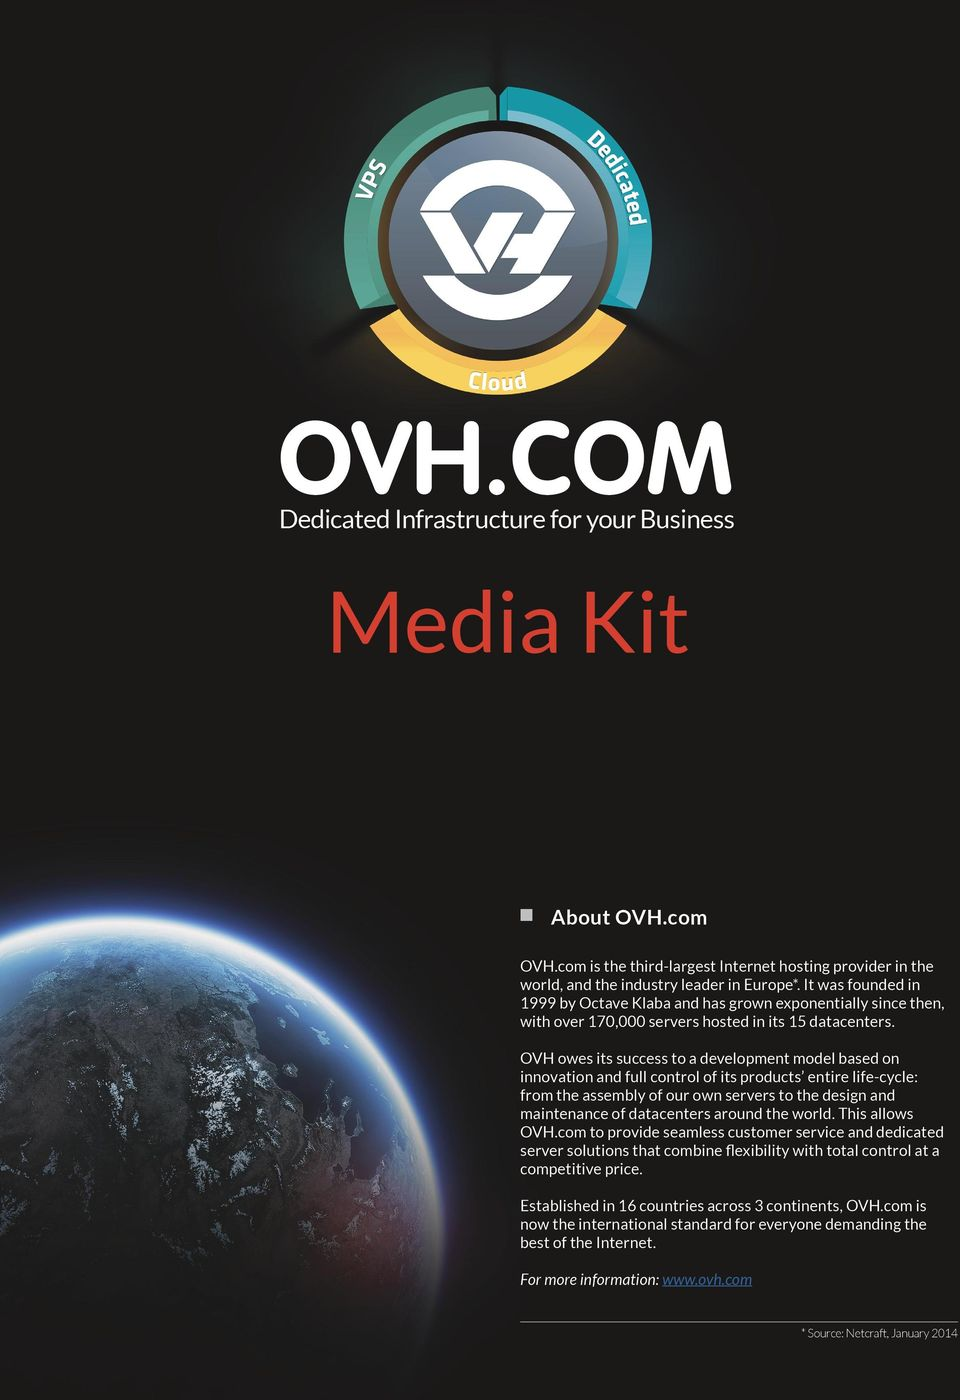 OVH owes its success to a development model based on innovation and full control of its products entire life-cycle: from the assembly of our own servers to the design and maintenance of datacenters